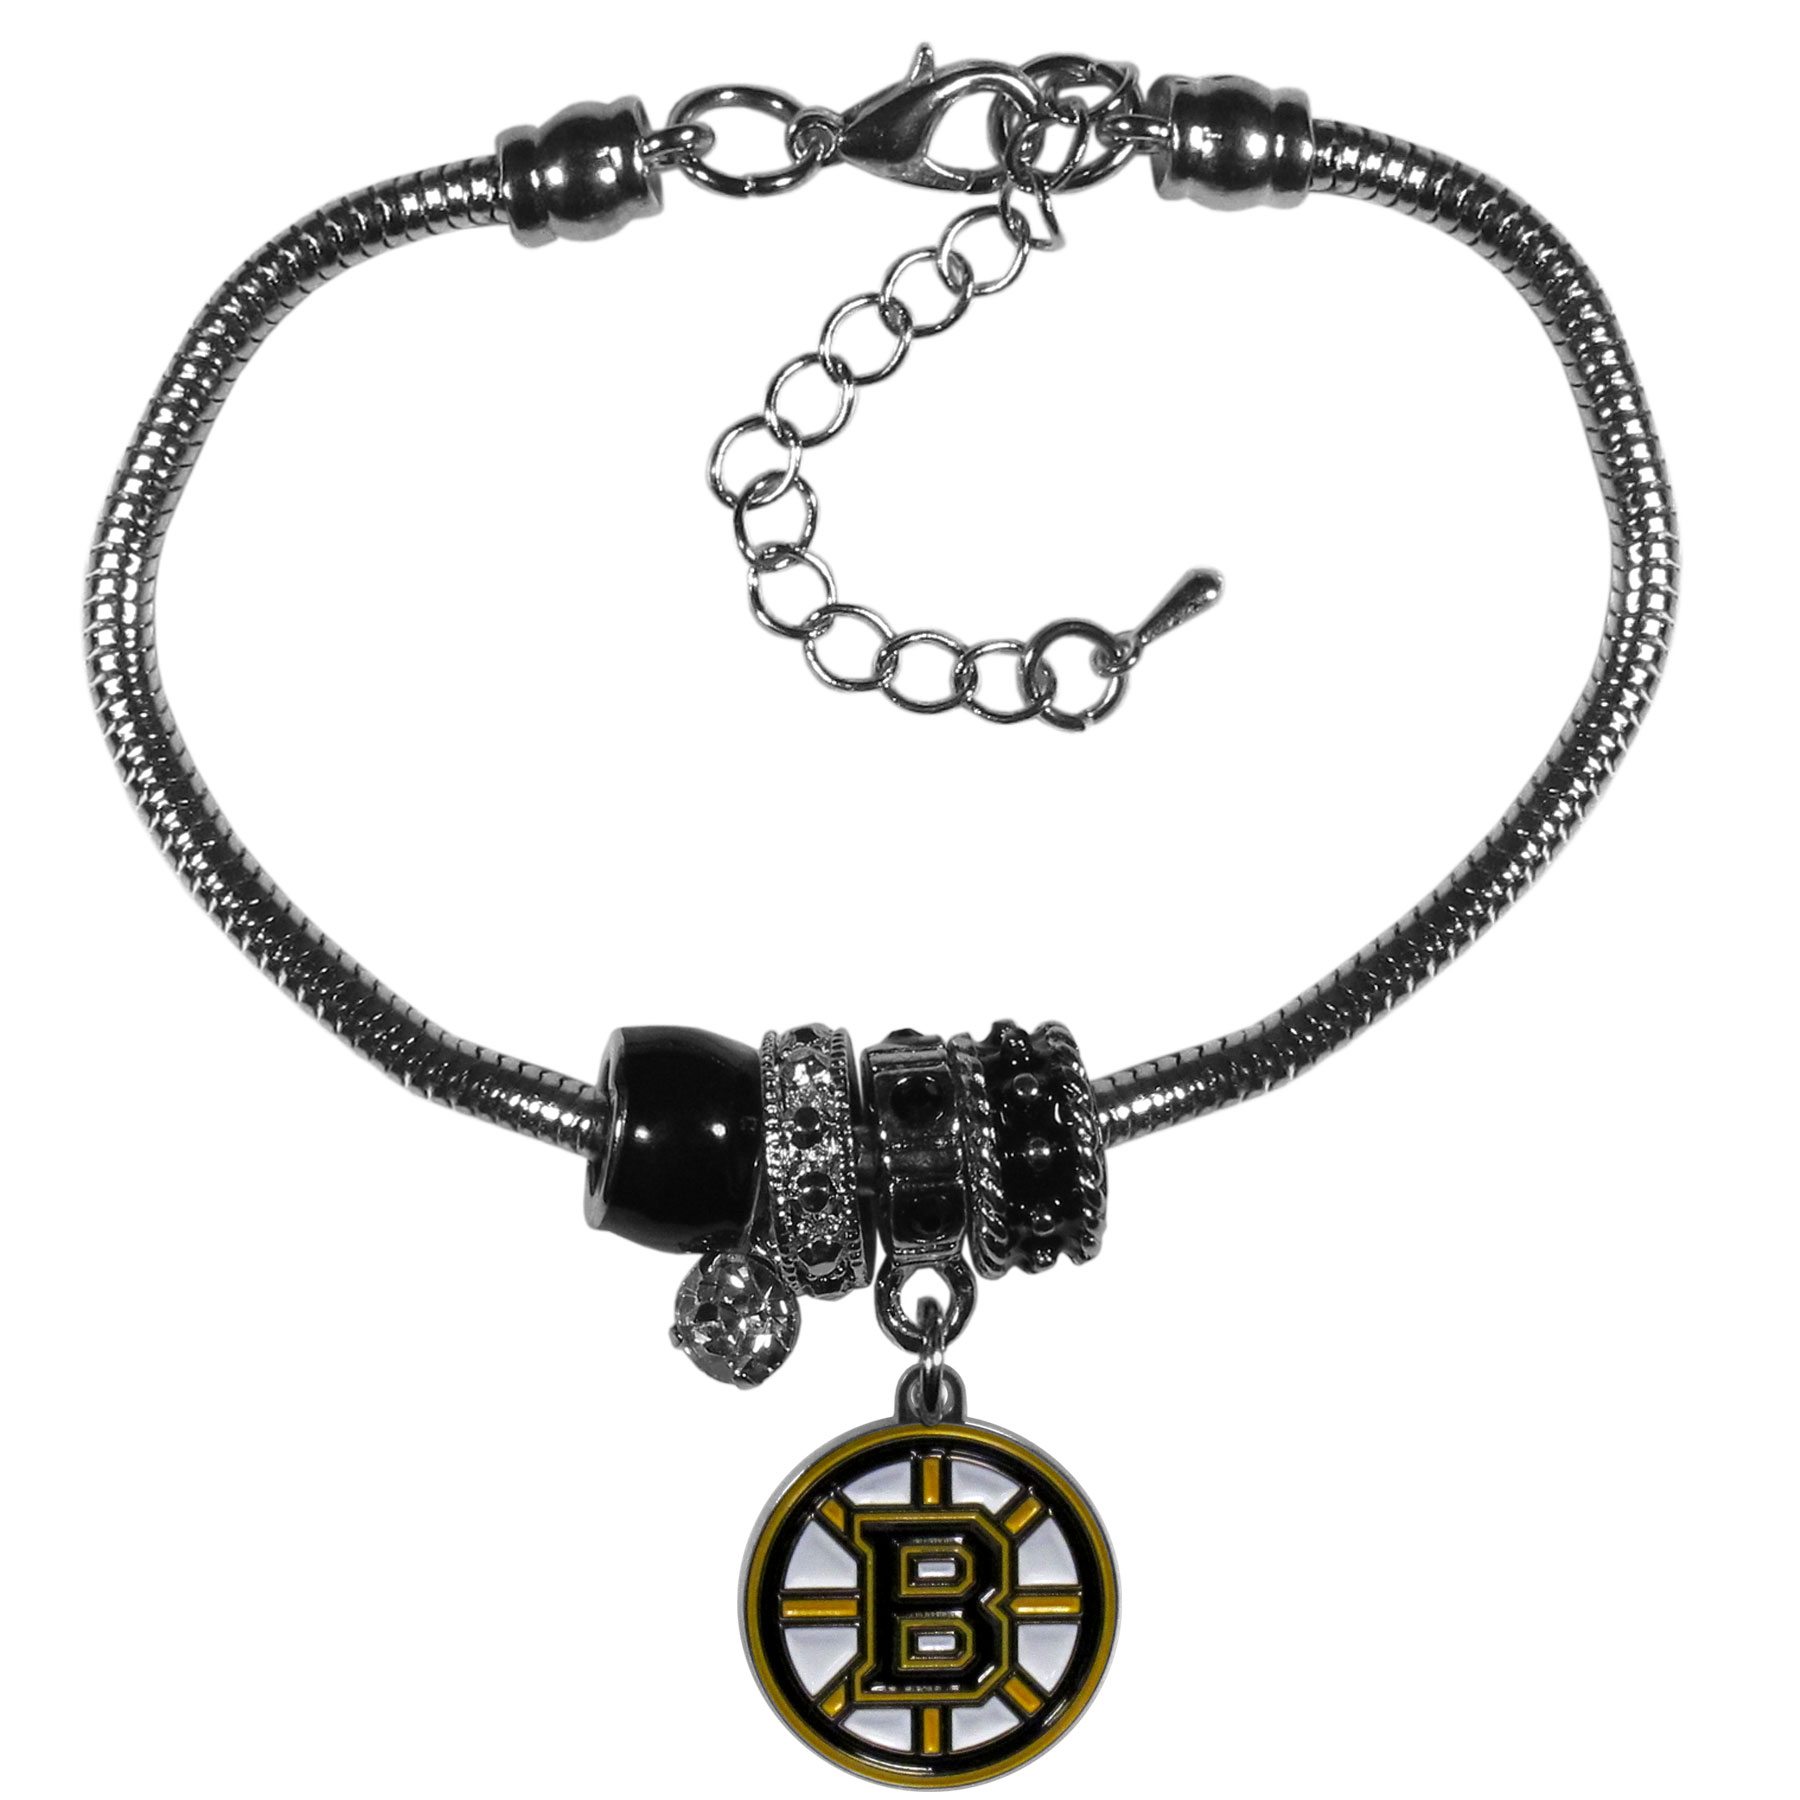 Boston Bruins® Euro Bead Bracelet - We have combined the wildly popular Euro style beads with your favorite team to create our  Boston Bruins® bead bracelet. The 7.5 inch snake chain with 2 inch extender features 4 Euro beads with enameled team colors and rhinestone accents with a high polish, nickel free charm and rhinestone charm. Perfect way to show off your team pride.